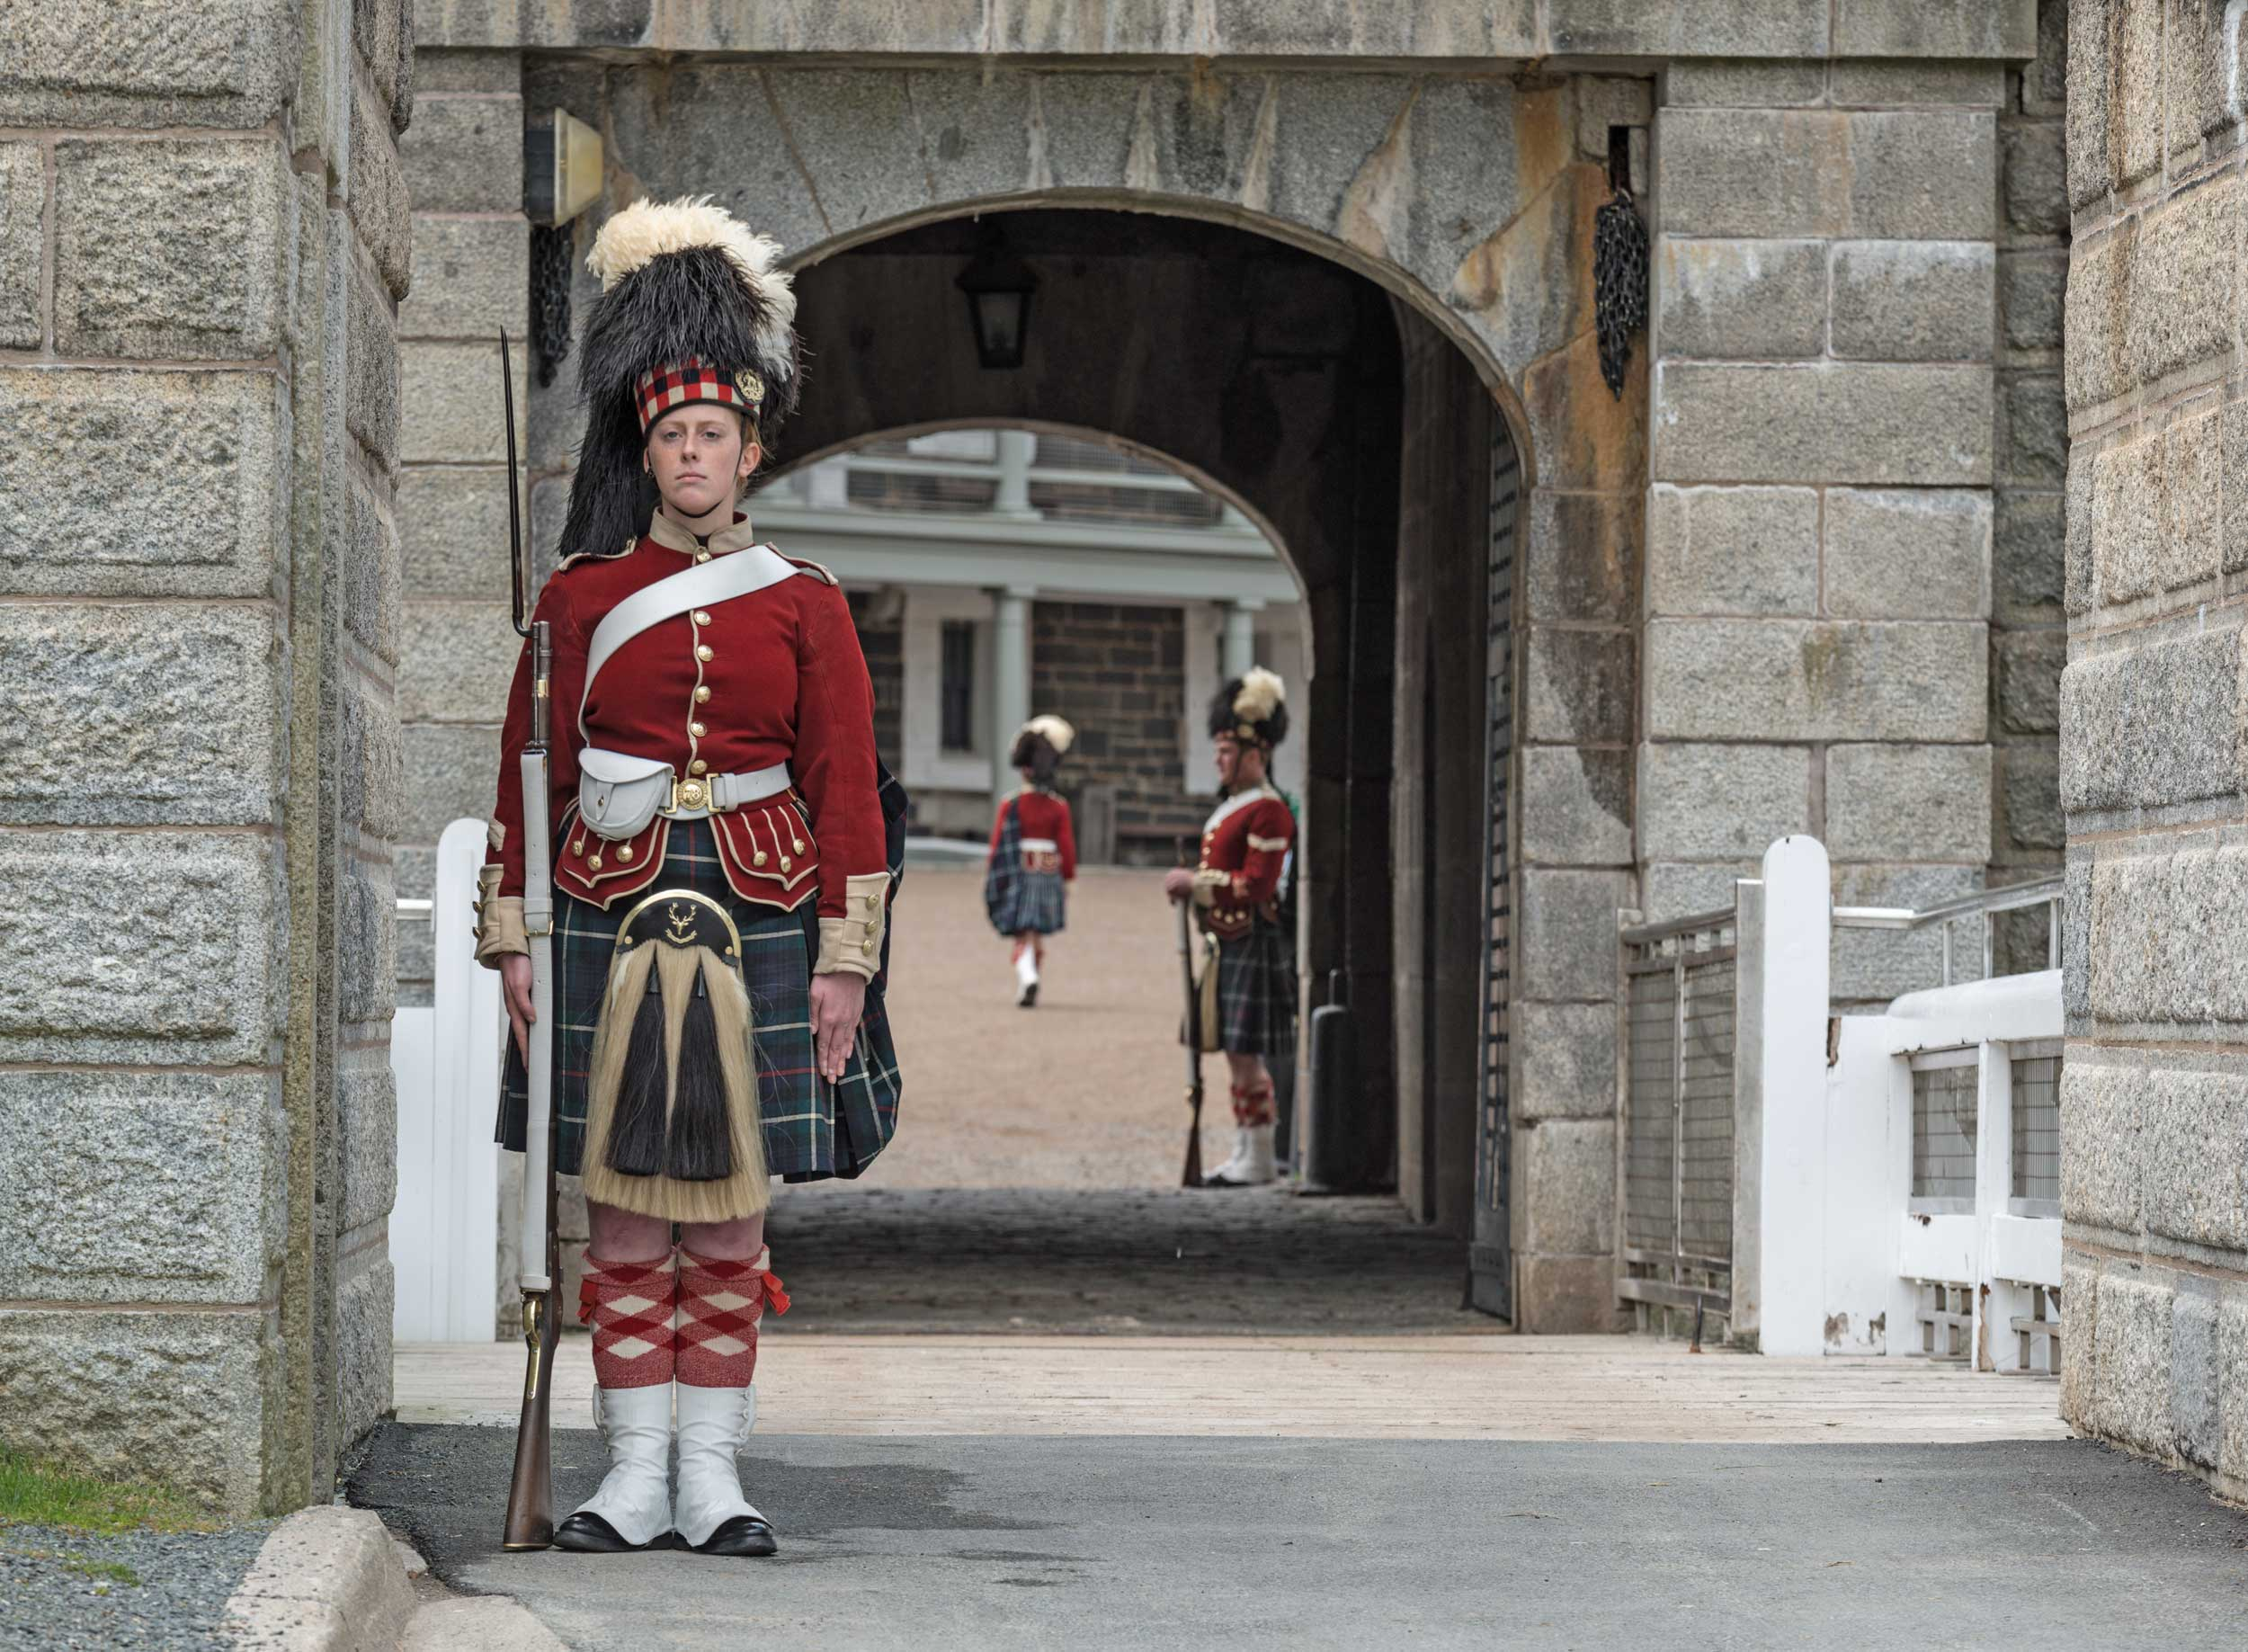 Soldiers in traditional costume at the entryway to a fortress, Halifax, Nova Sciotia